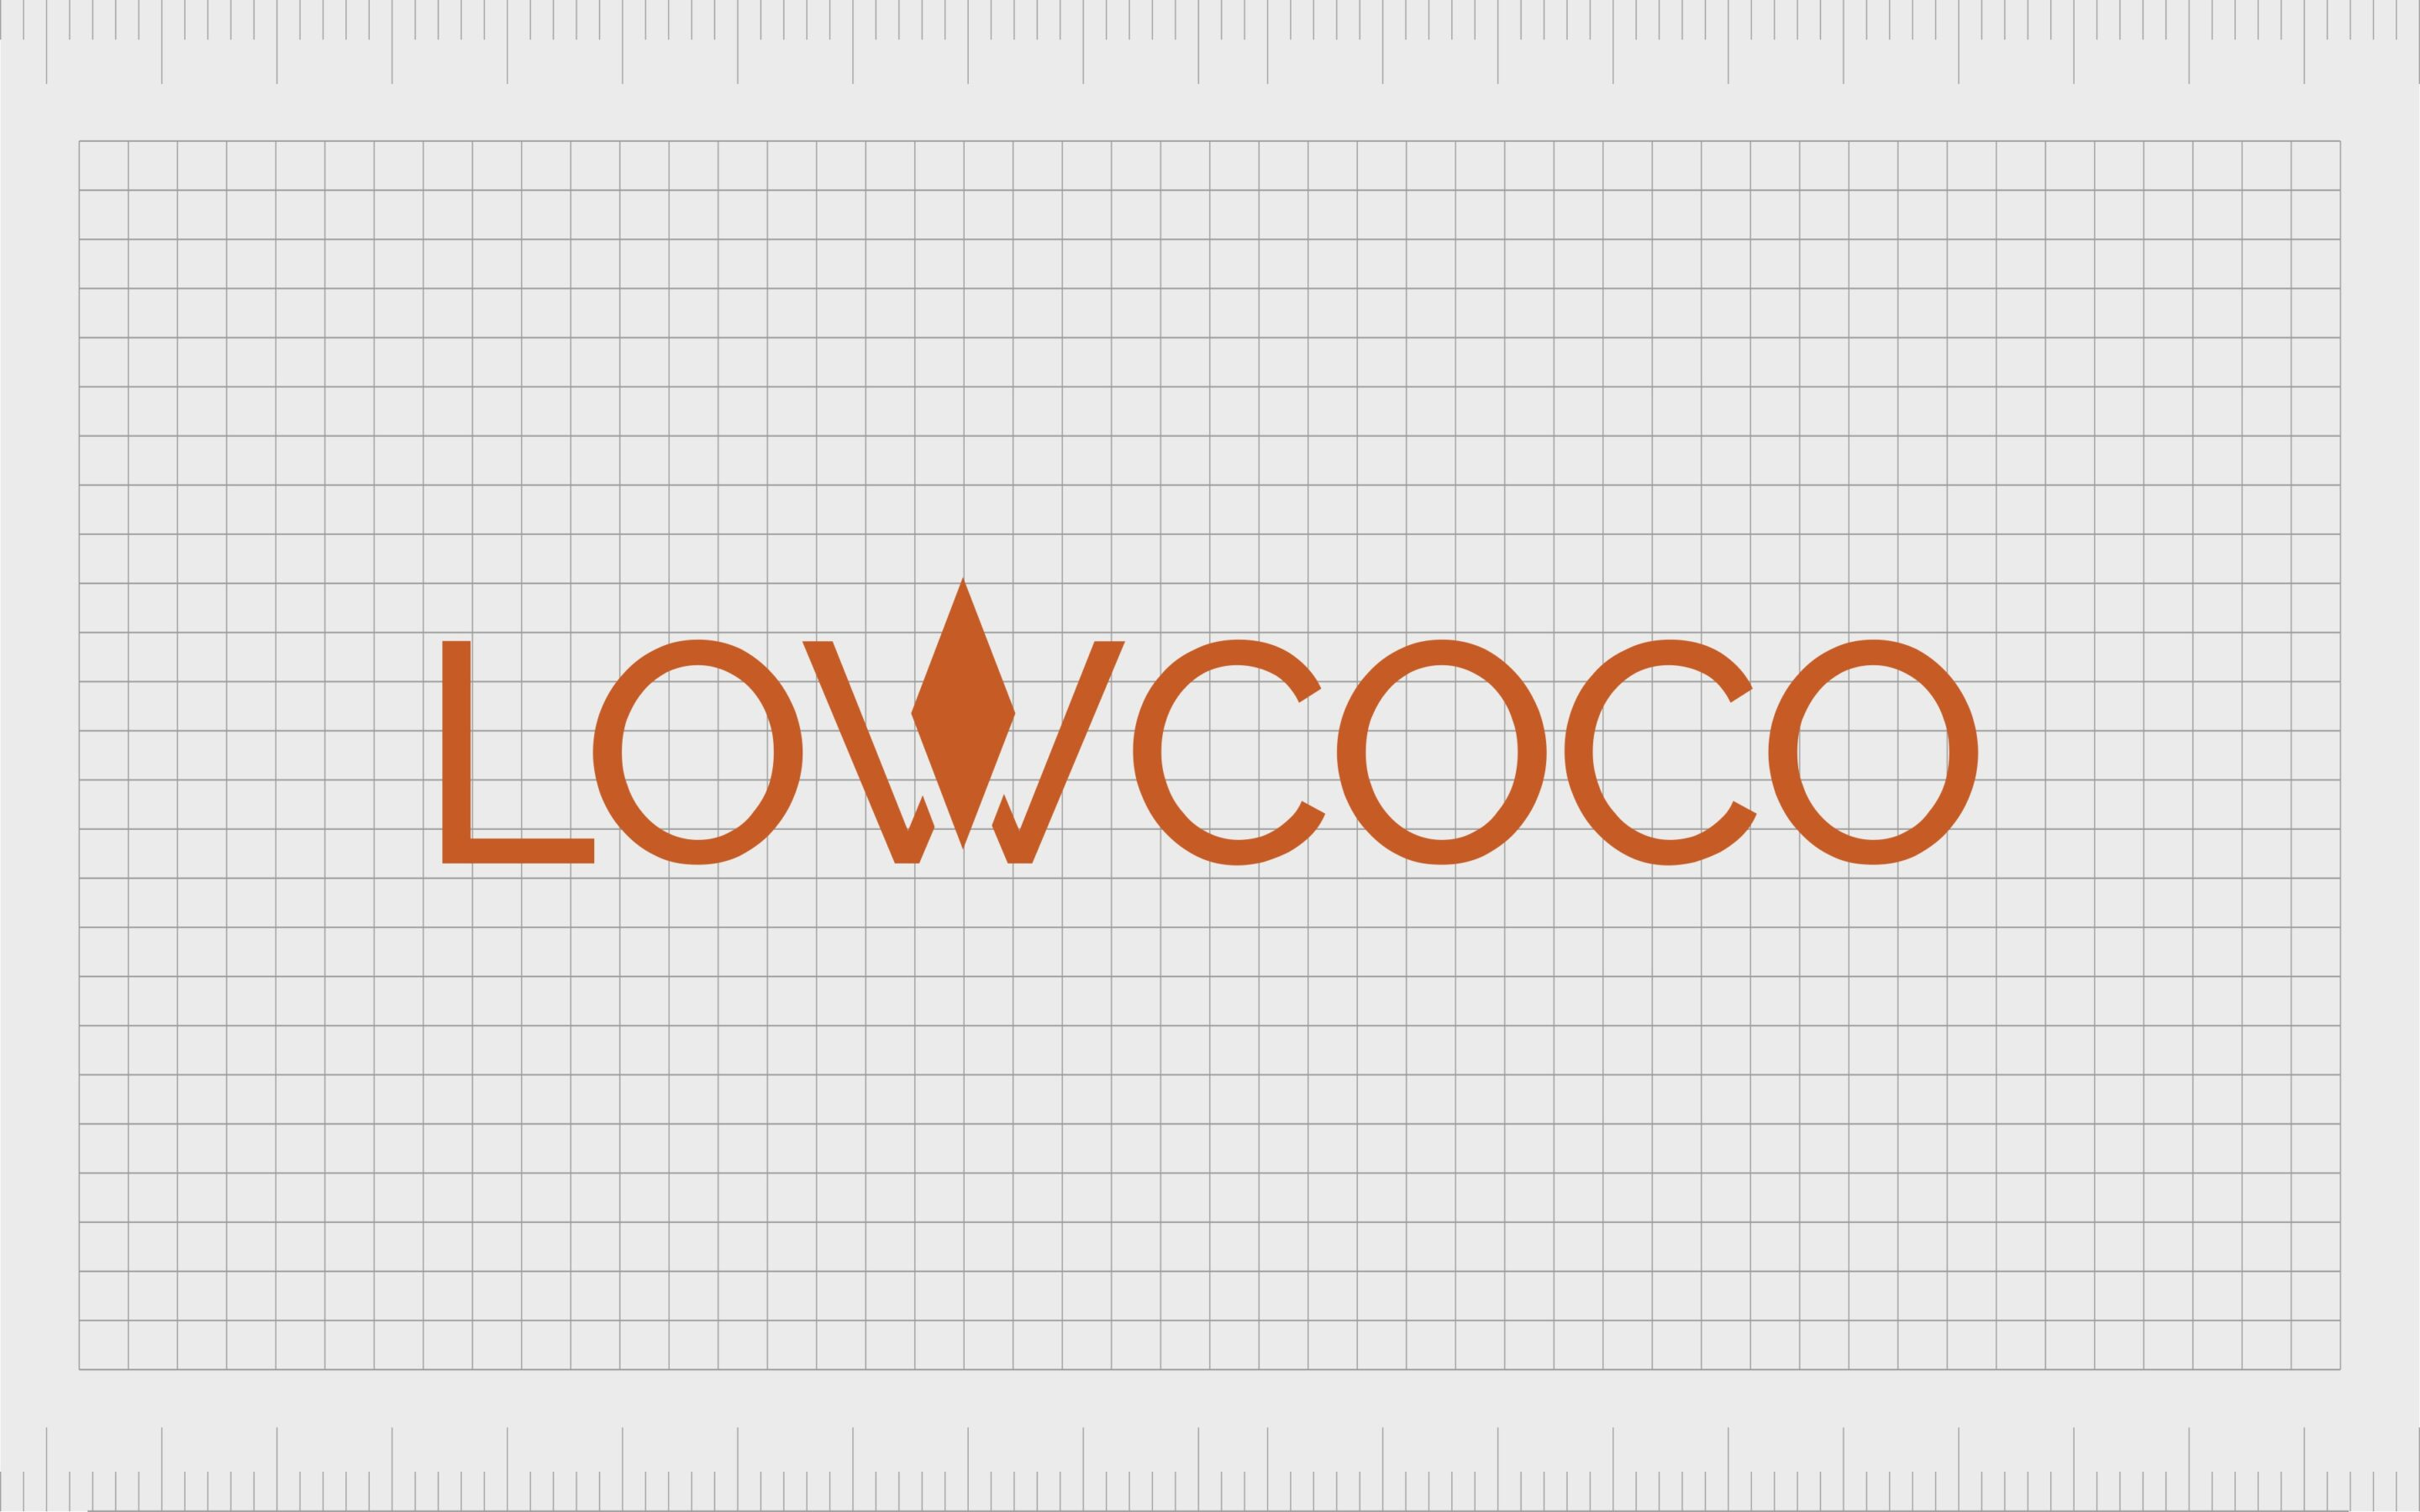 Lowcoco